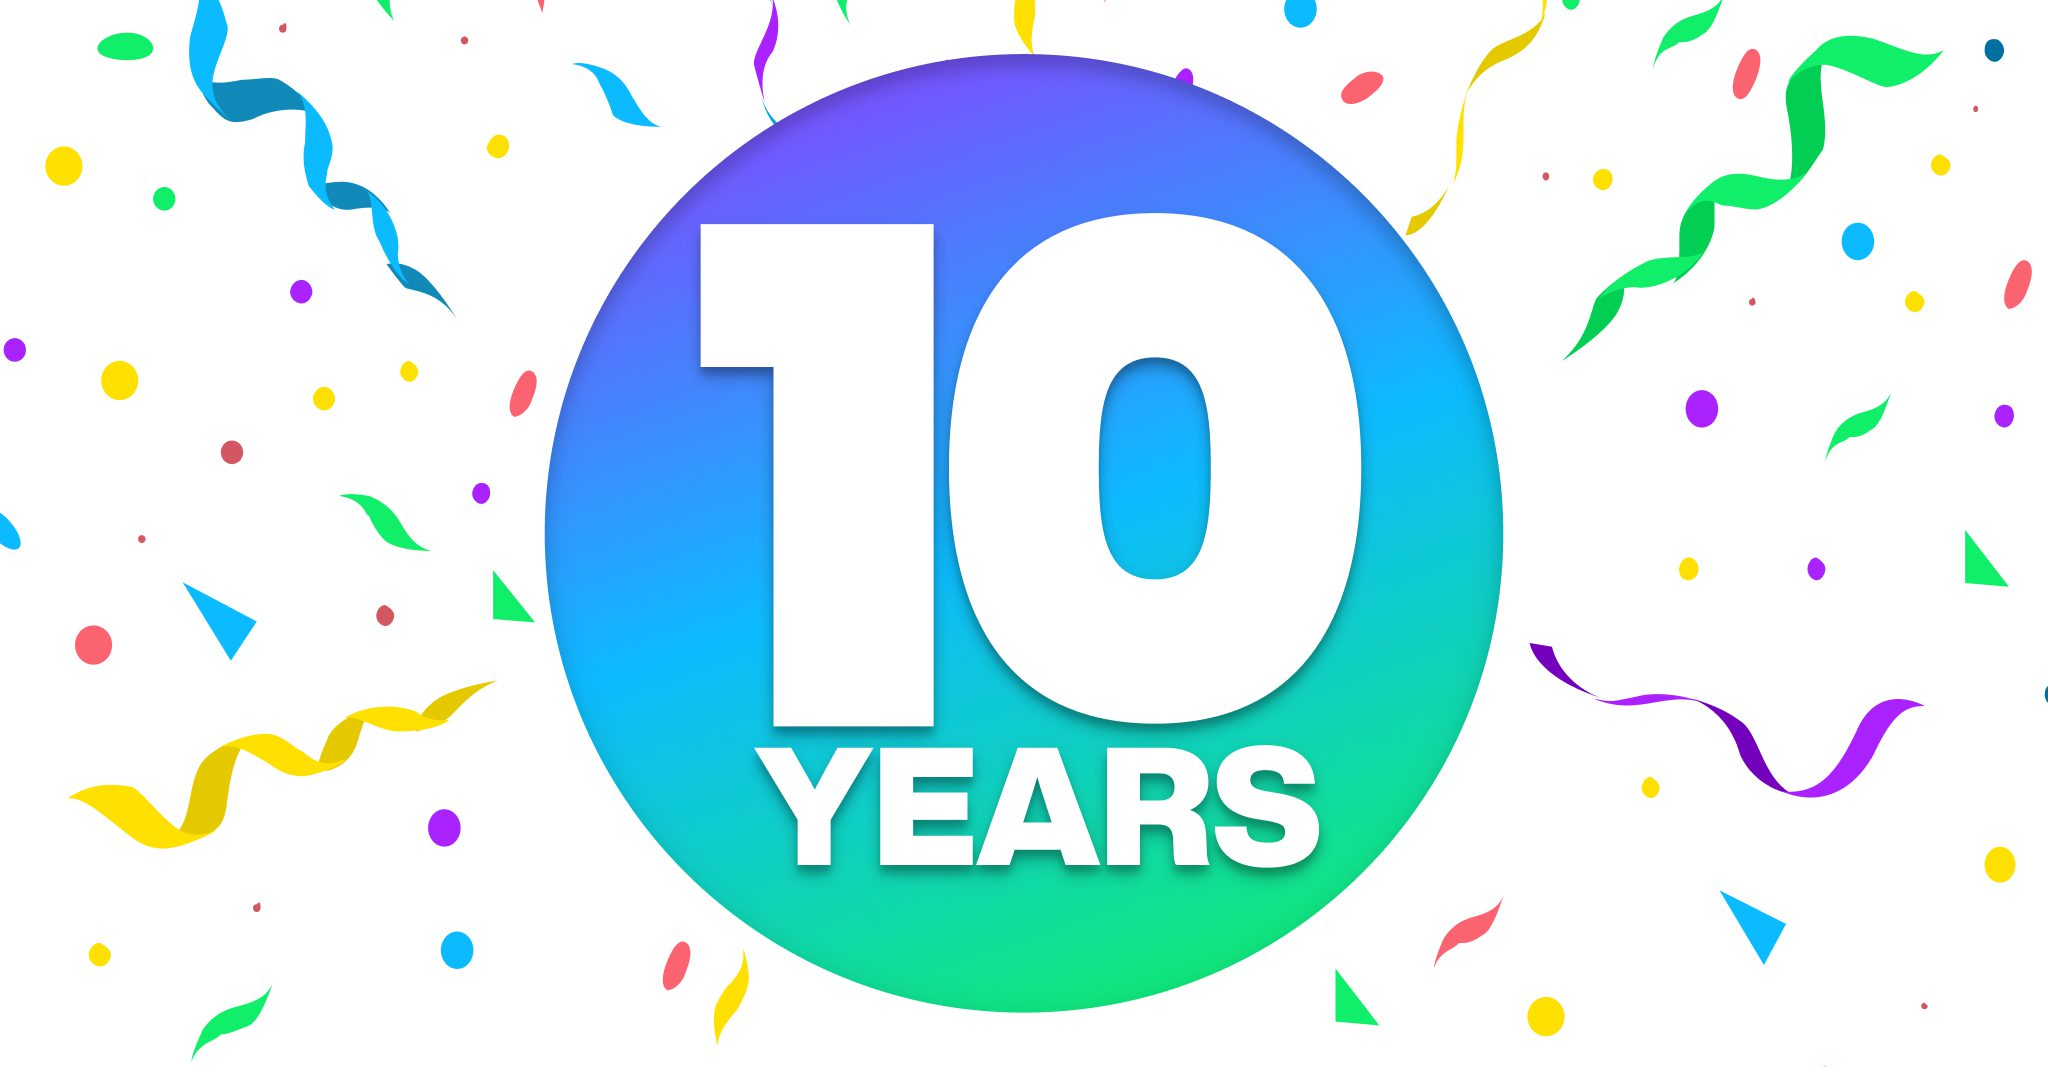 10 years of LifeStreet with confetti